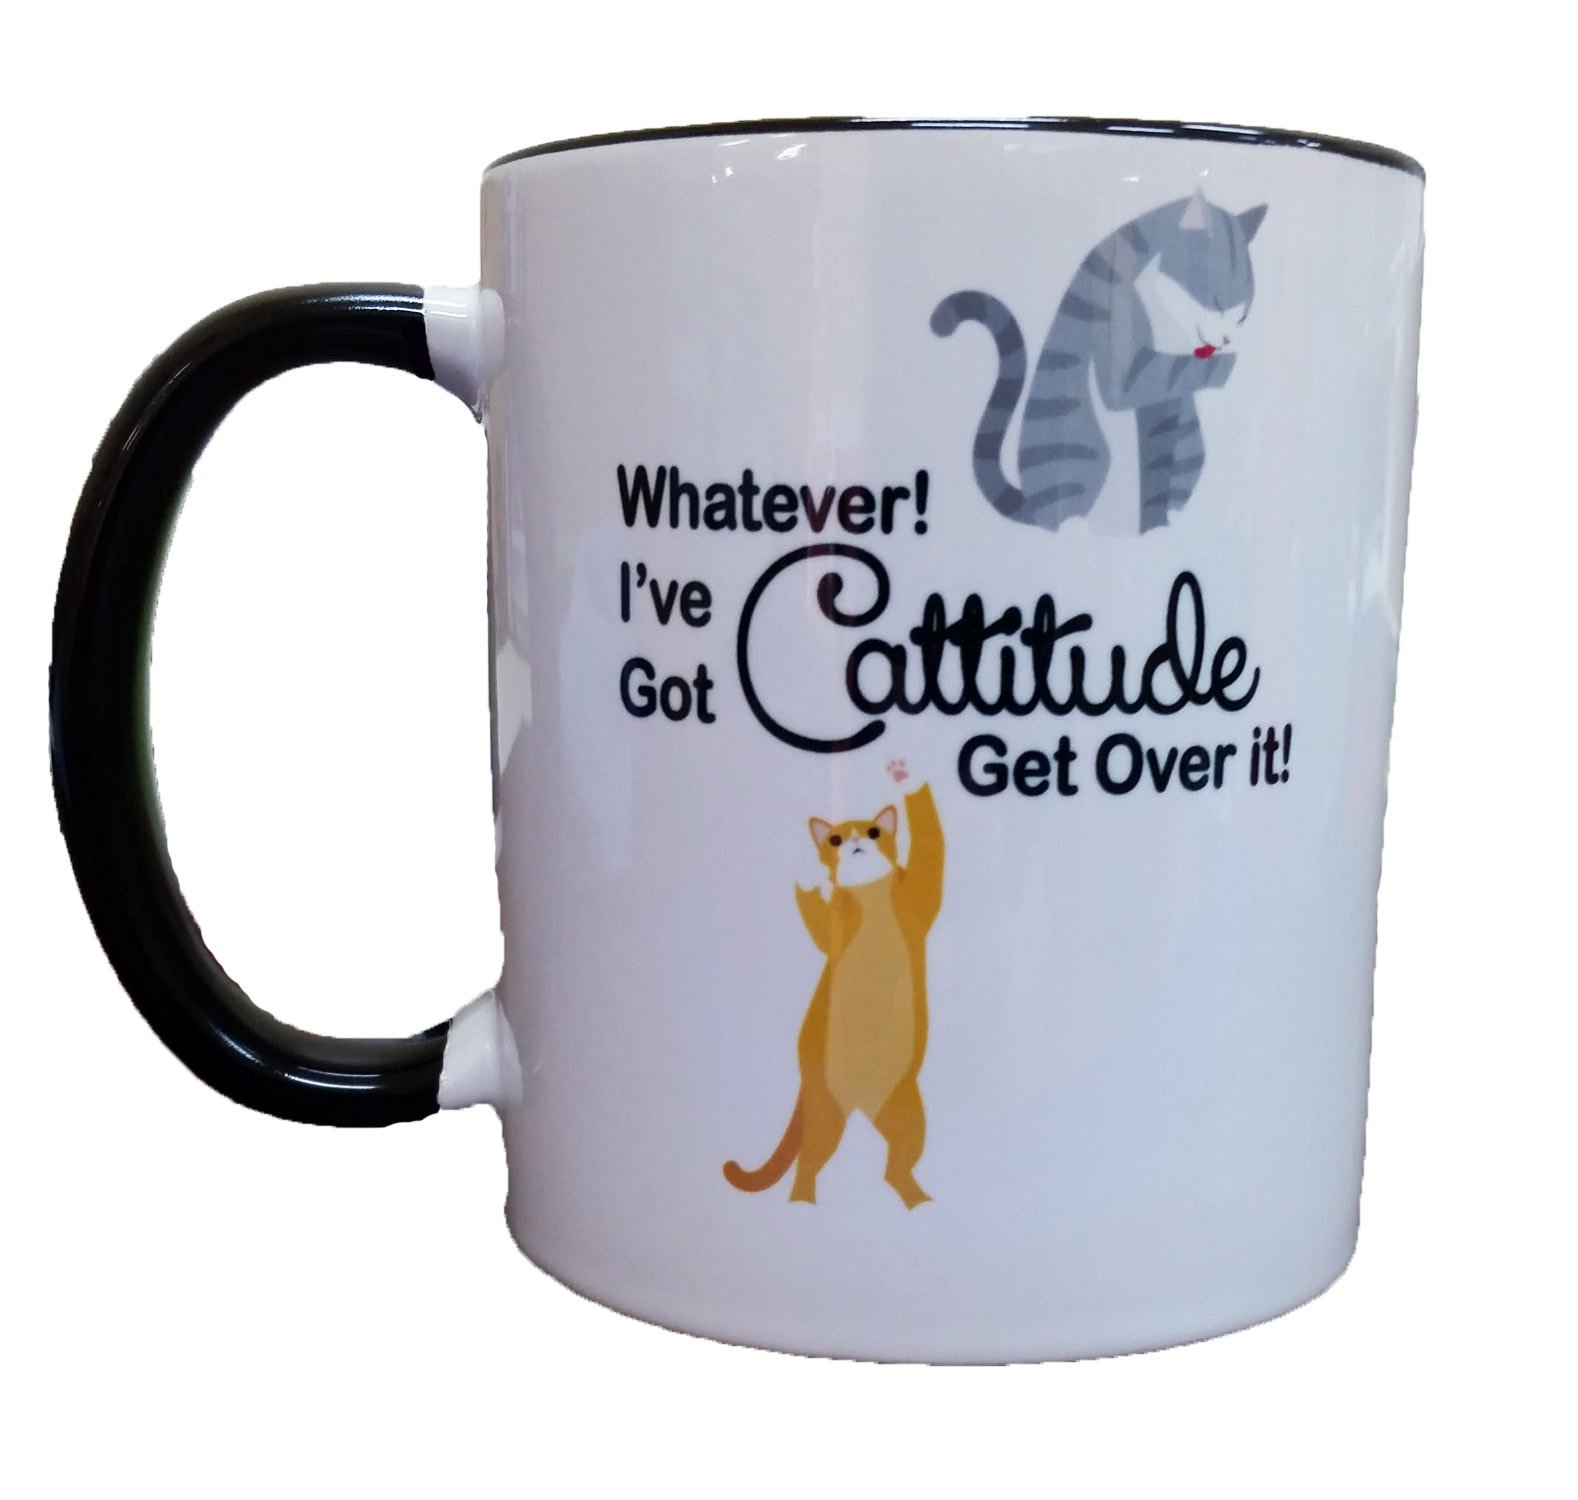 Whatever! I've Got Cattitude Get Over It! Coffee or Tea 11oz Mug - Perfect Gift for Cat and Animal Lovers